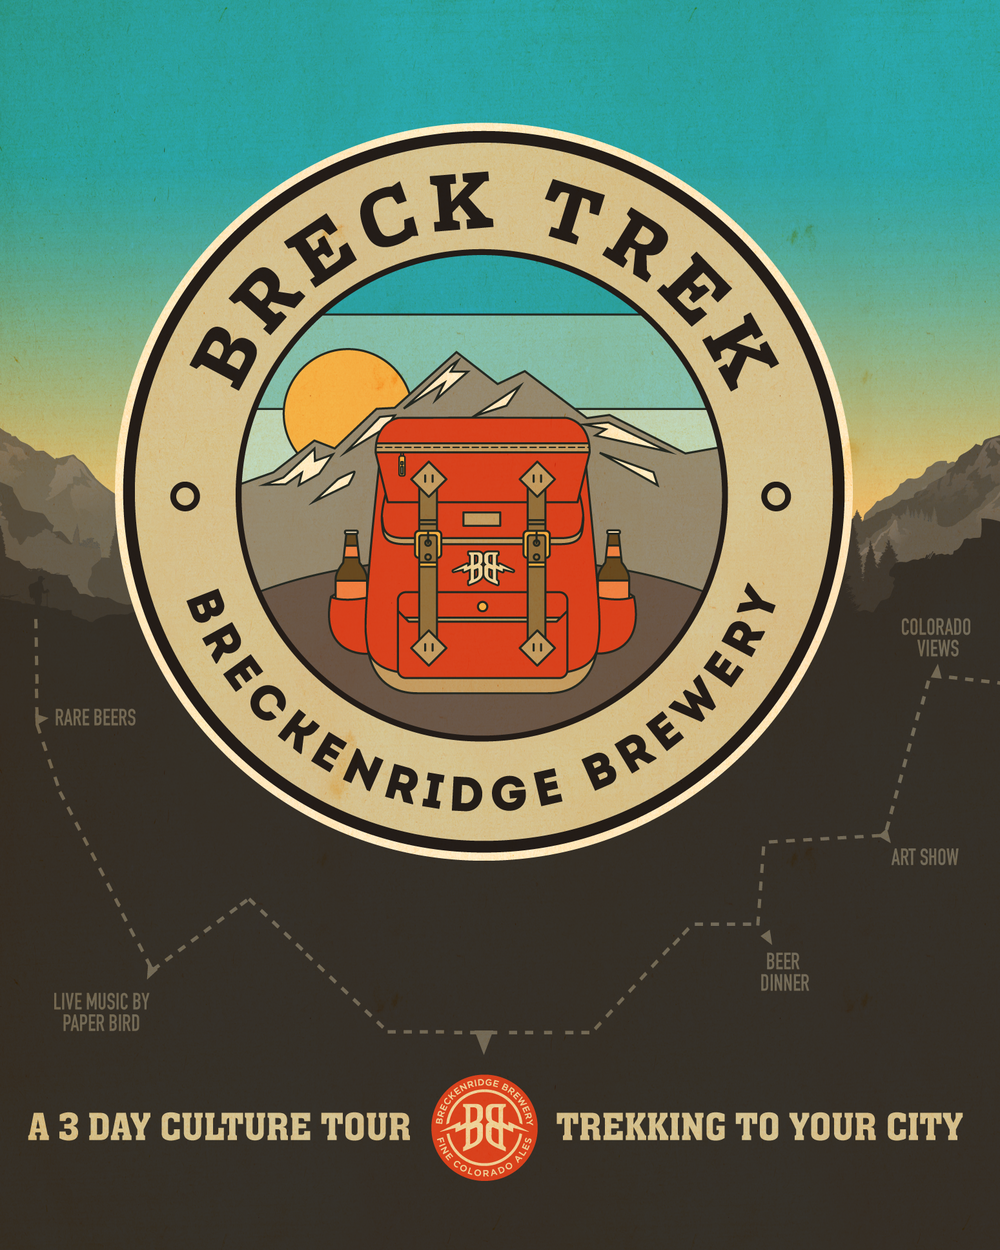 Breck-Trek-Digital-Generic-VERTICAL.png